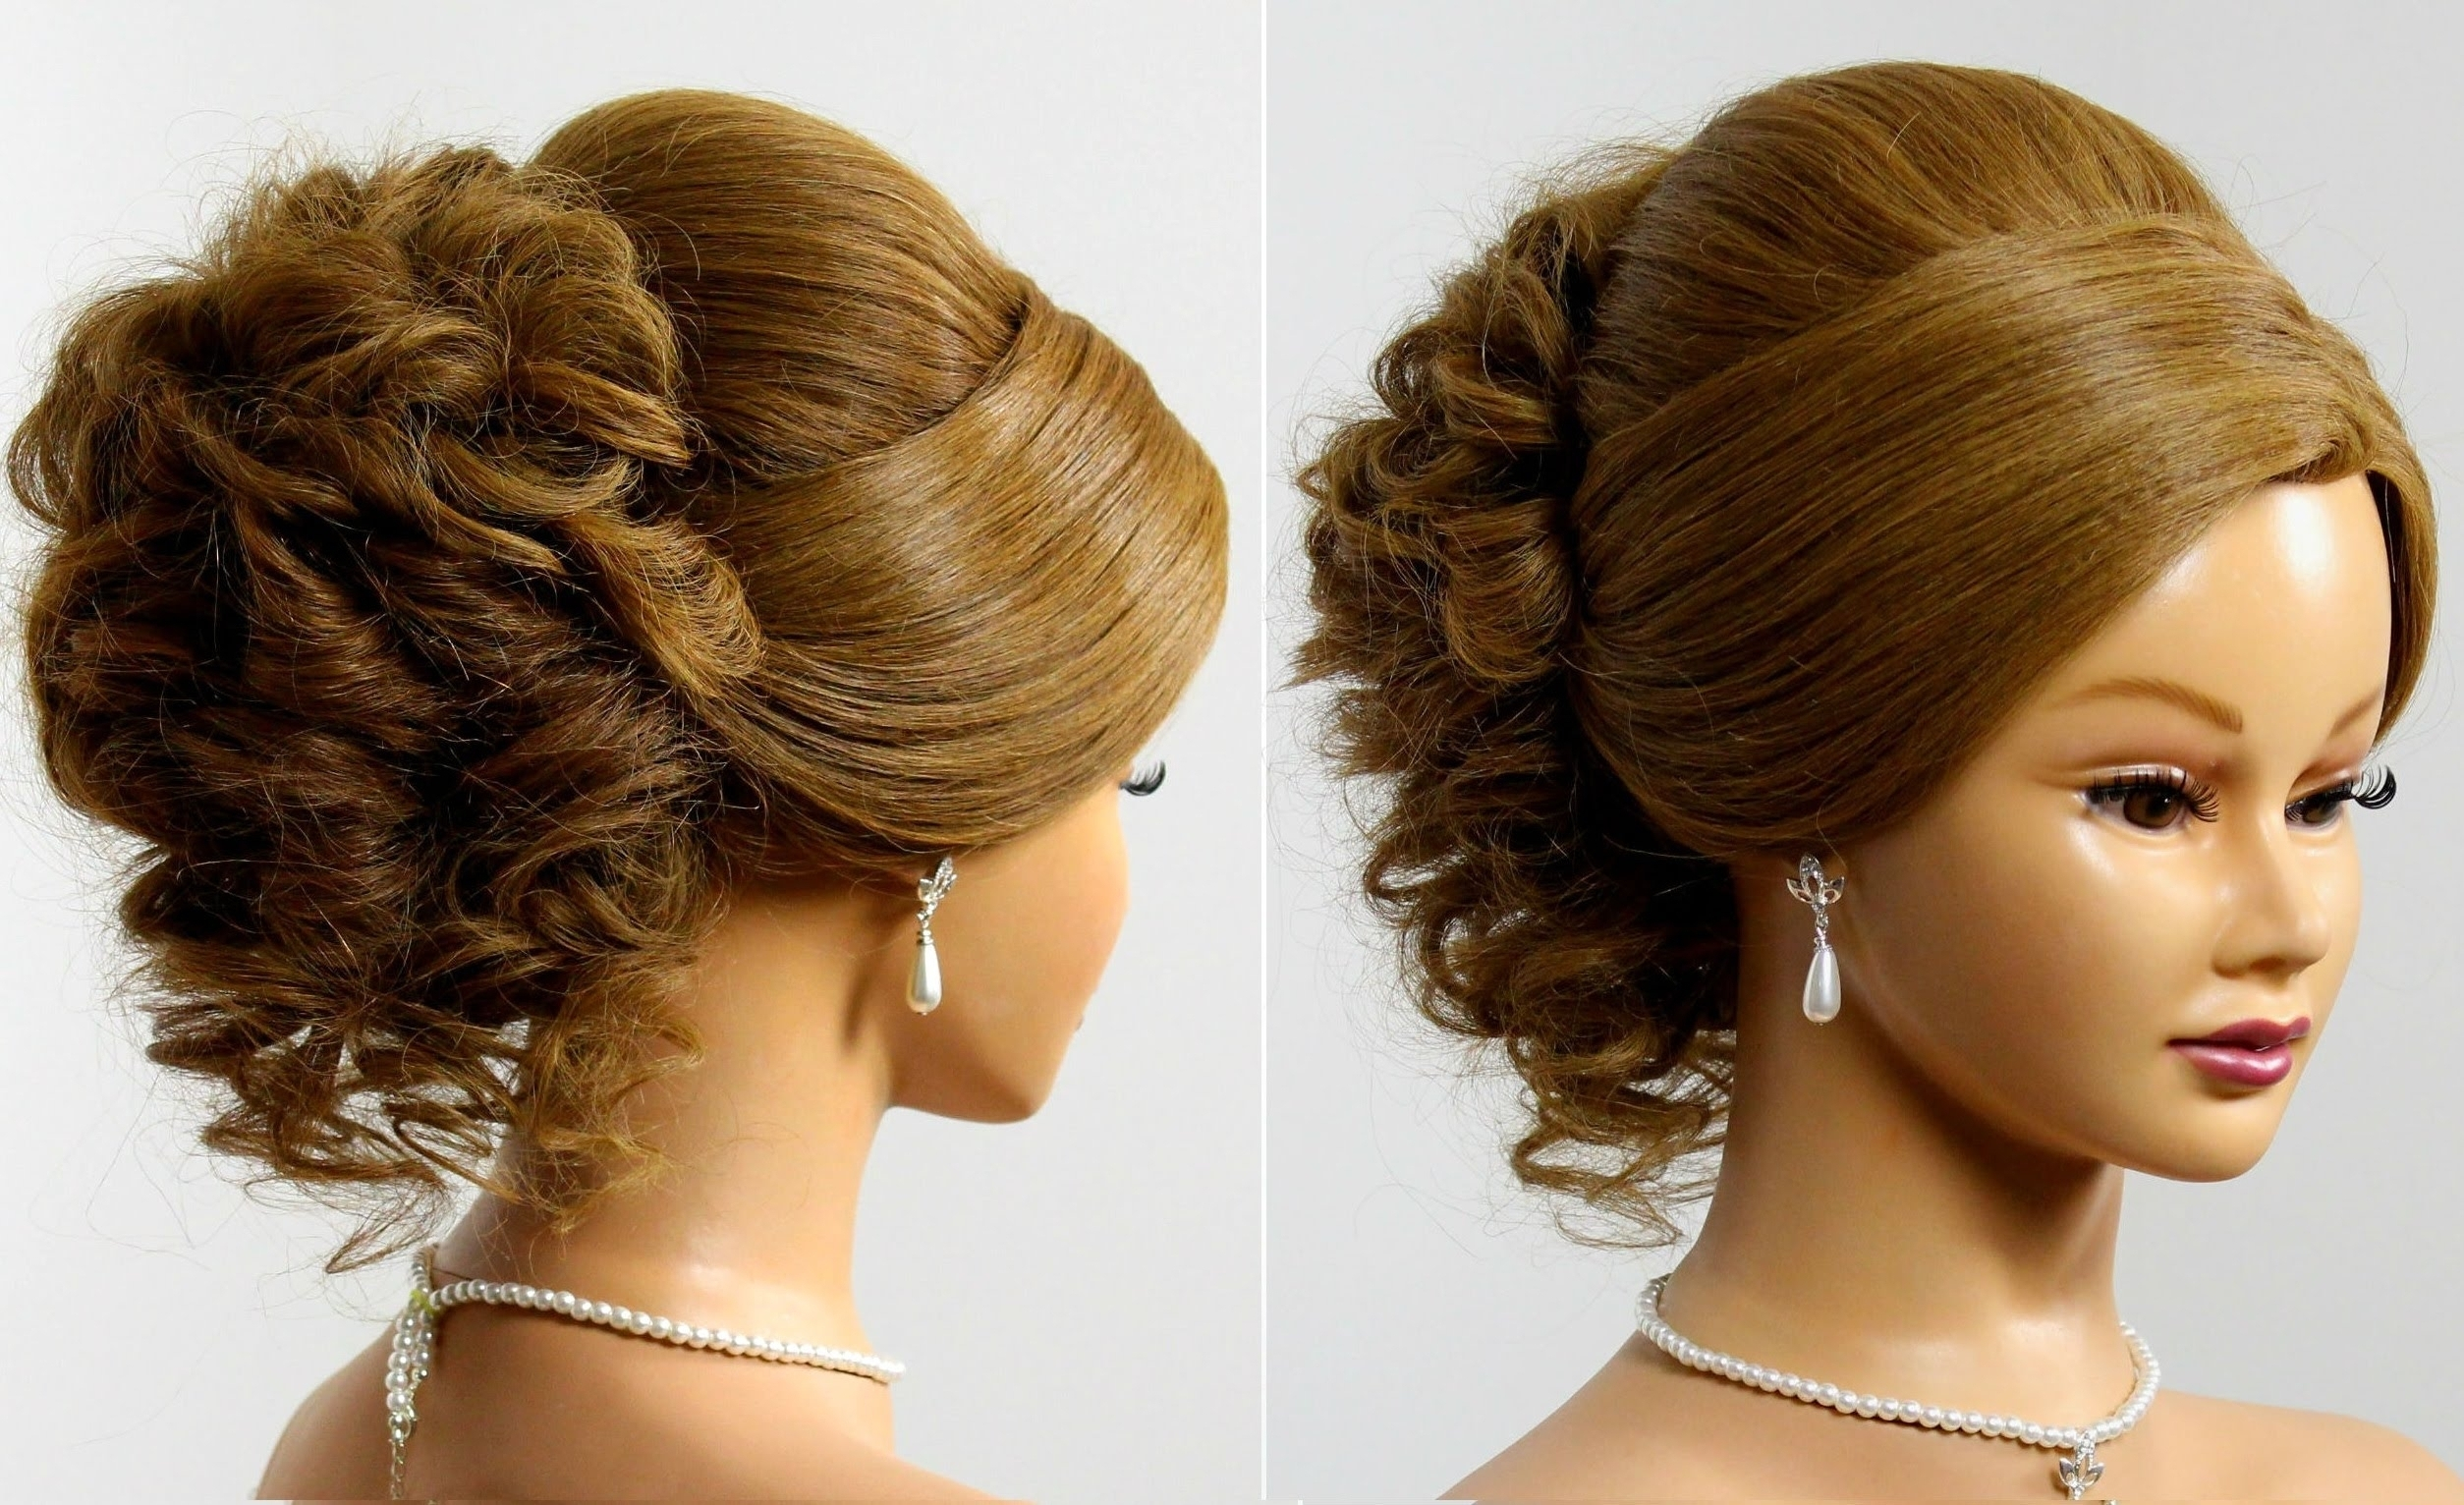 Prom Hairstyles Updos For Medium Hair Prom Updos Medium Hair 1000 Inside Updos For Medium Hair (View 11 of 15)